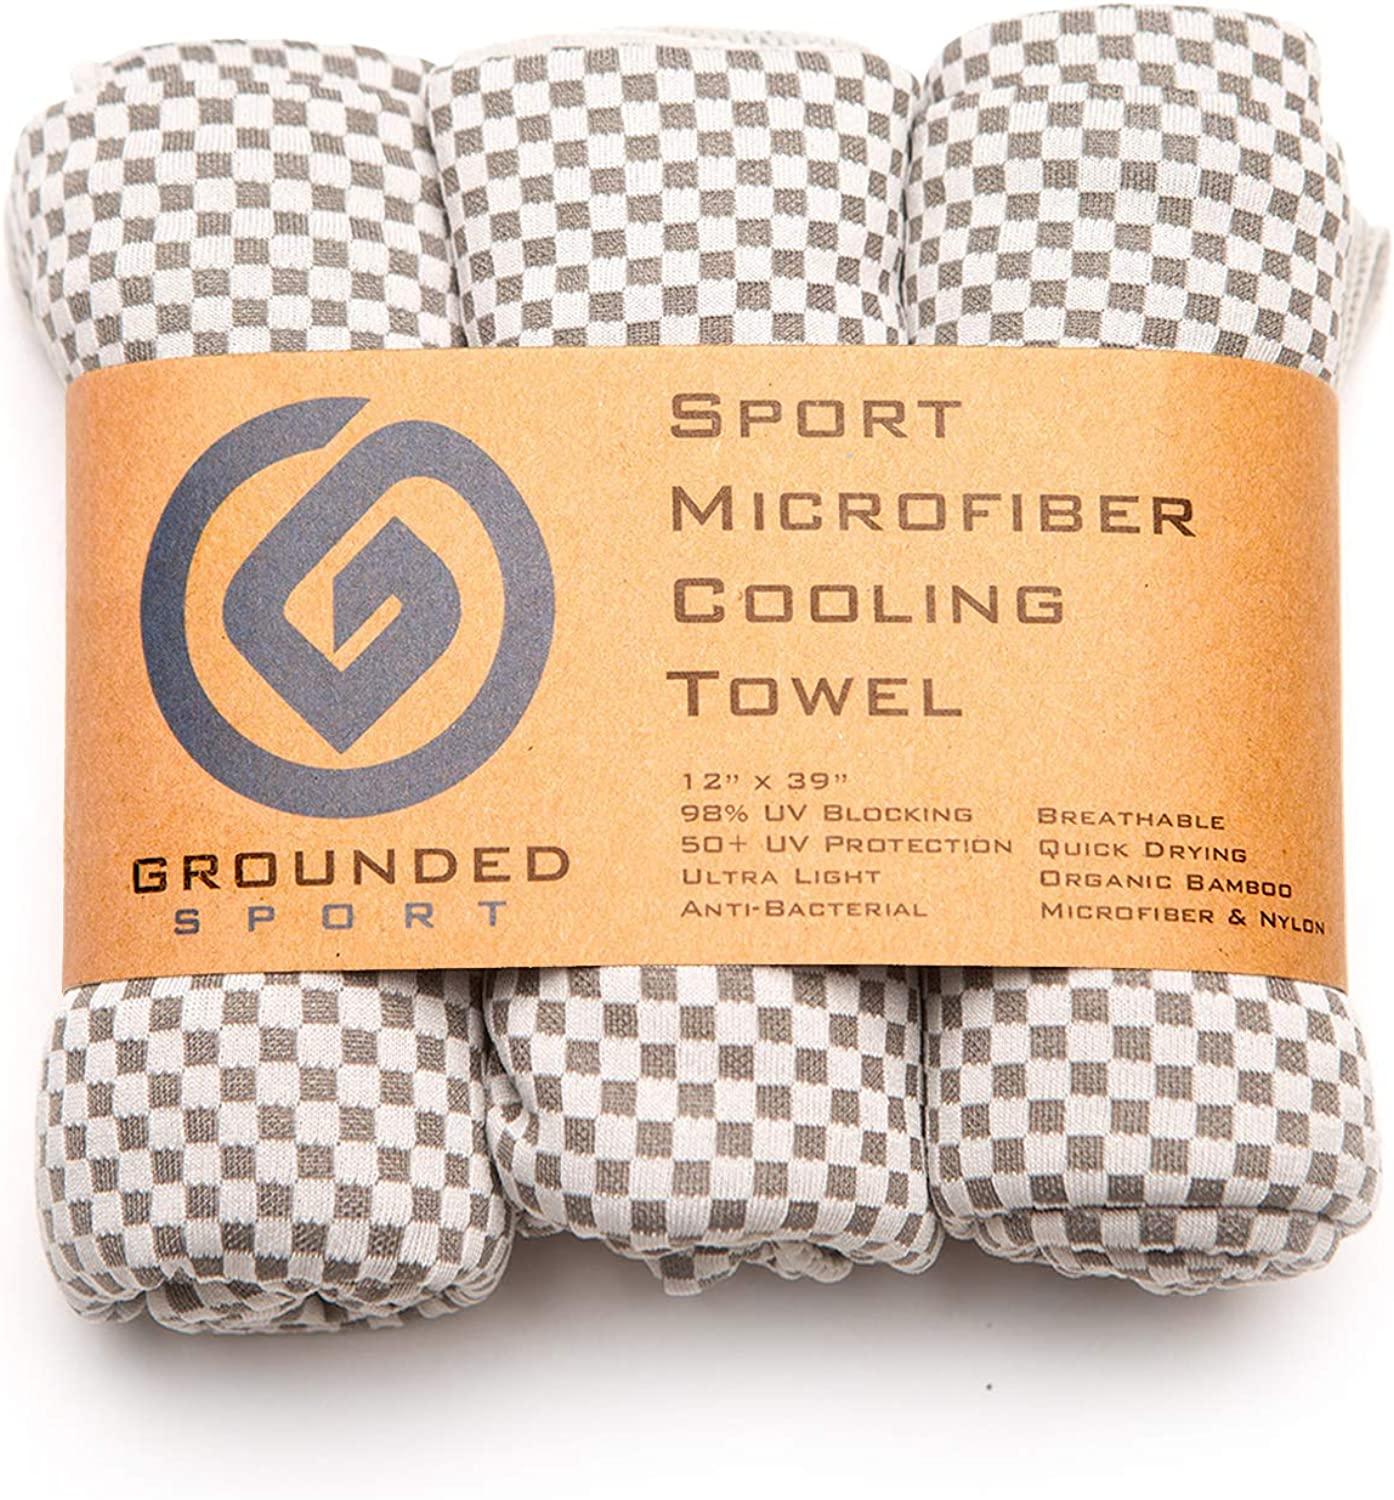 Grounded Sport Ultra Lightweight Compact (12  x 39 ) Cooling Towel 3-Pack (Packaged as Shown) Bamboo Microfiber Towel for Outdoors, Gym, Travel or Gifts